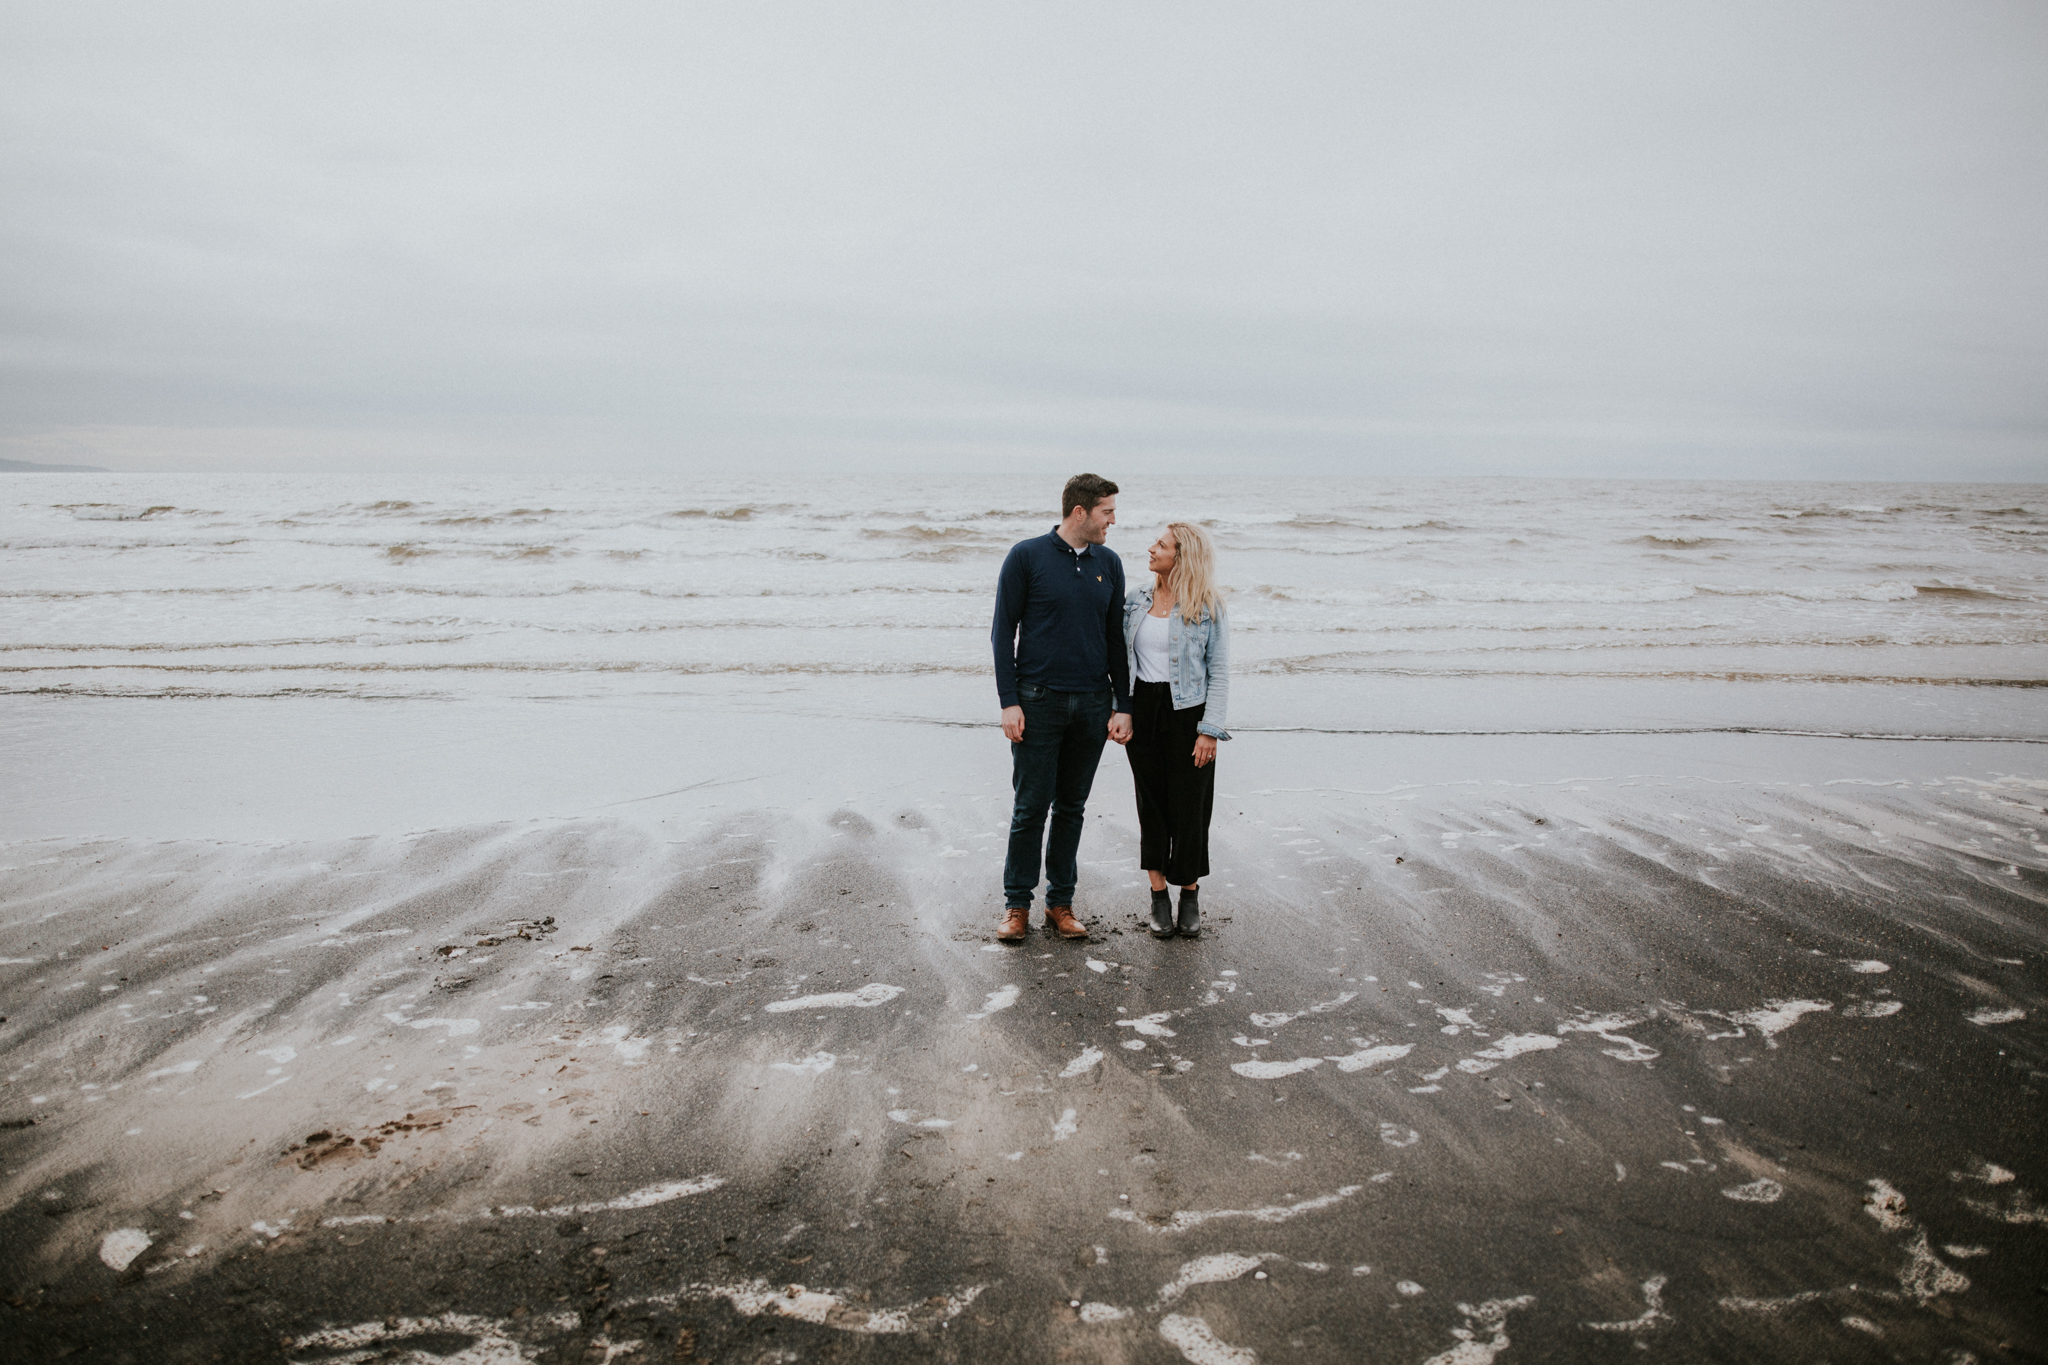 The couple is standing on the Icelandic beach in Troon, Ayrshire